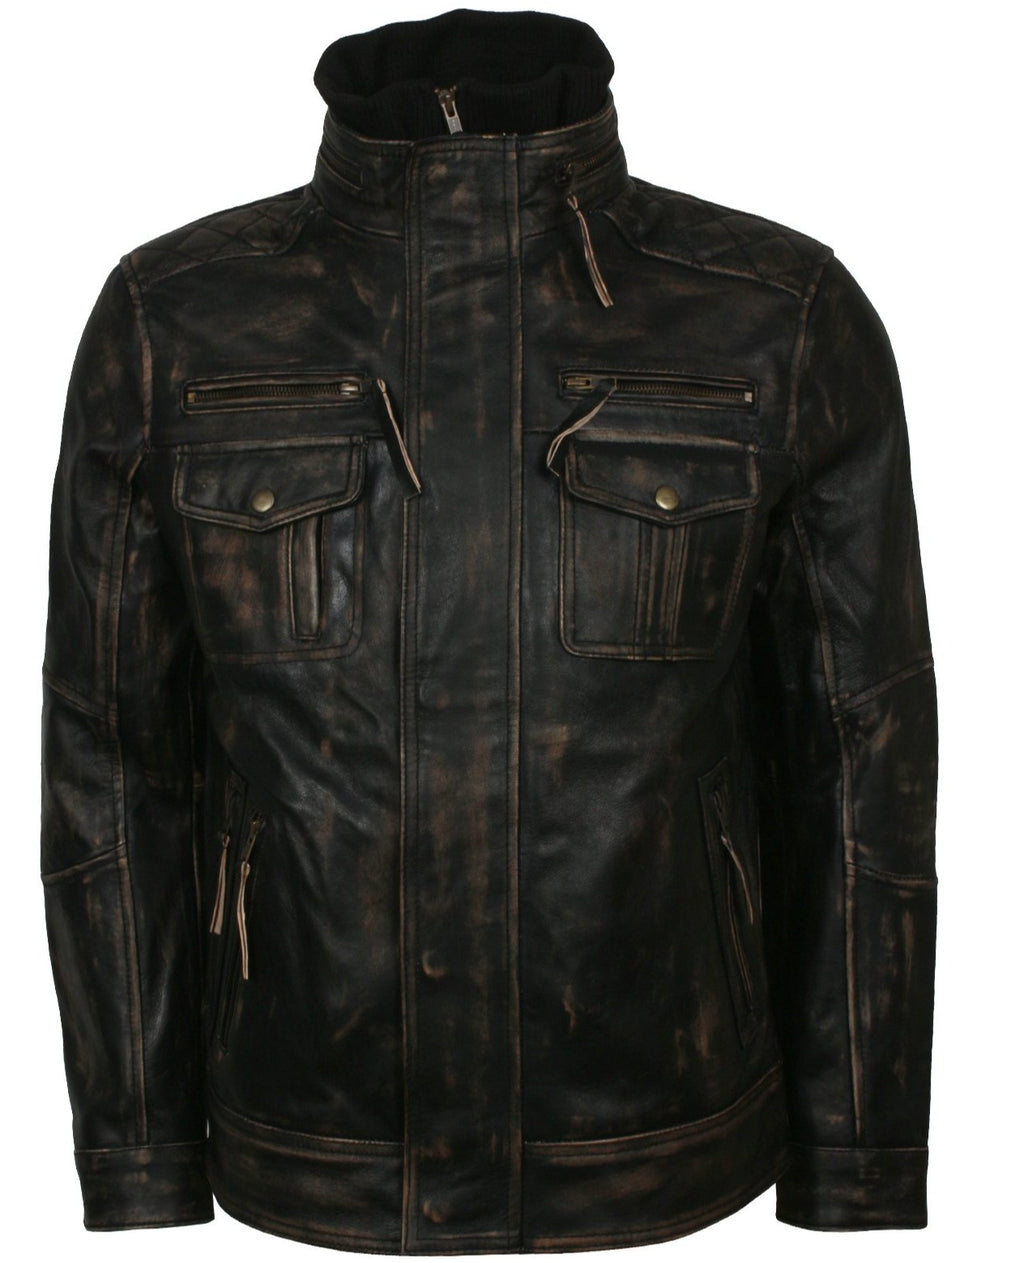 Distressed Leather Biker Jacket Mens